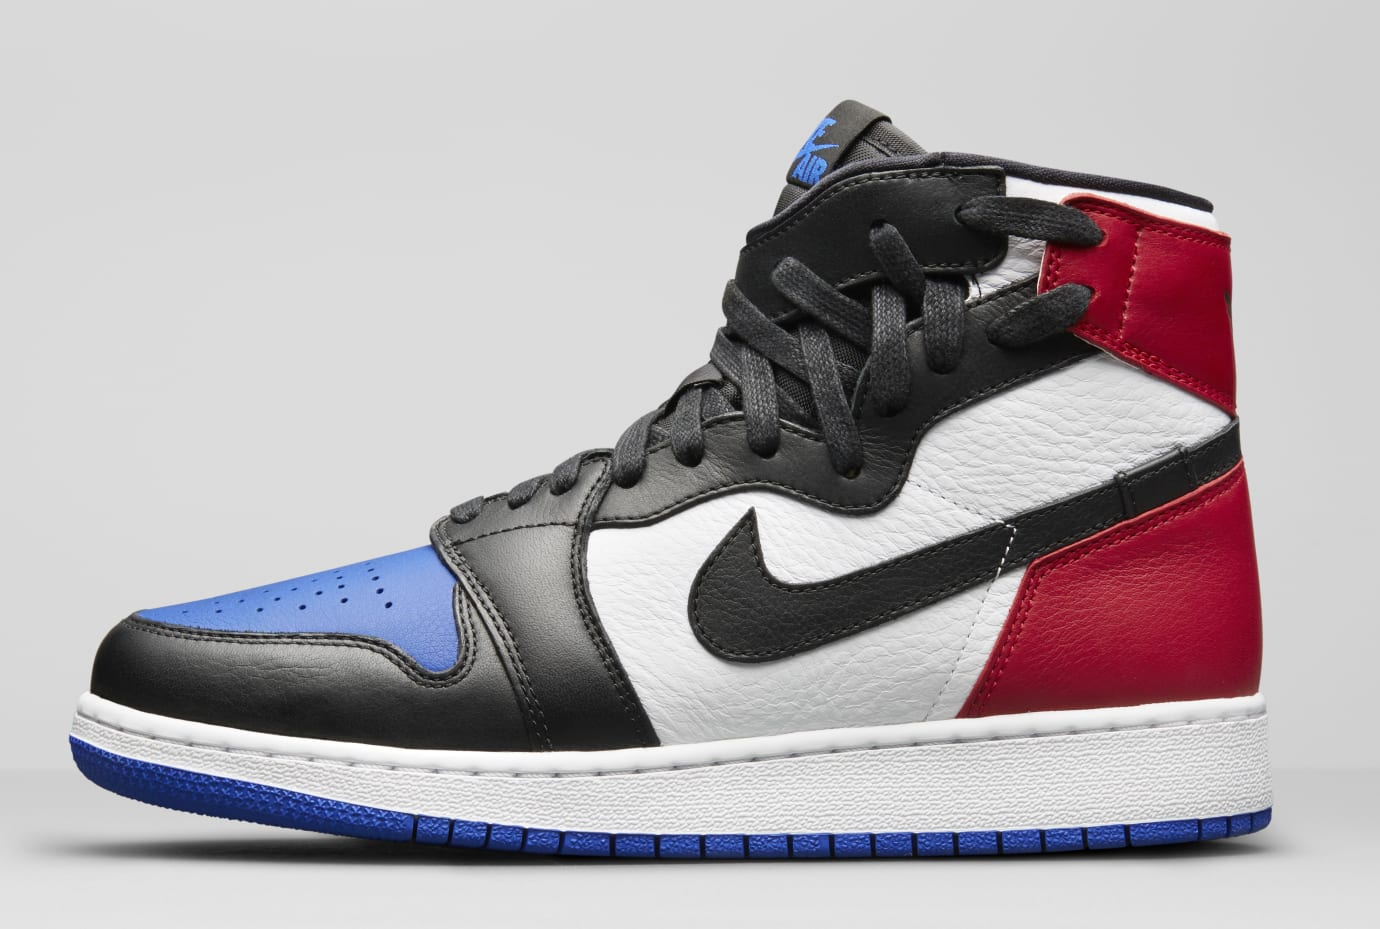 Air Jordan 1 Rebel 'Top 3' AT4151-001 (Lateral)